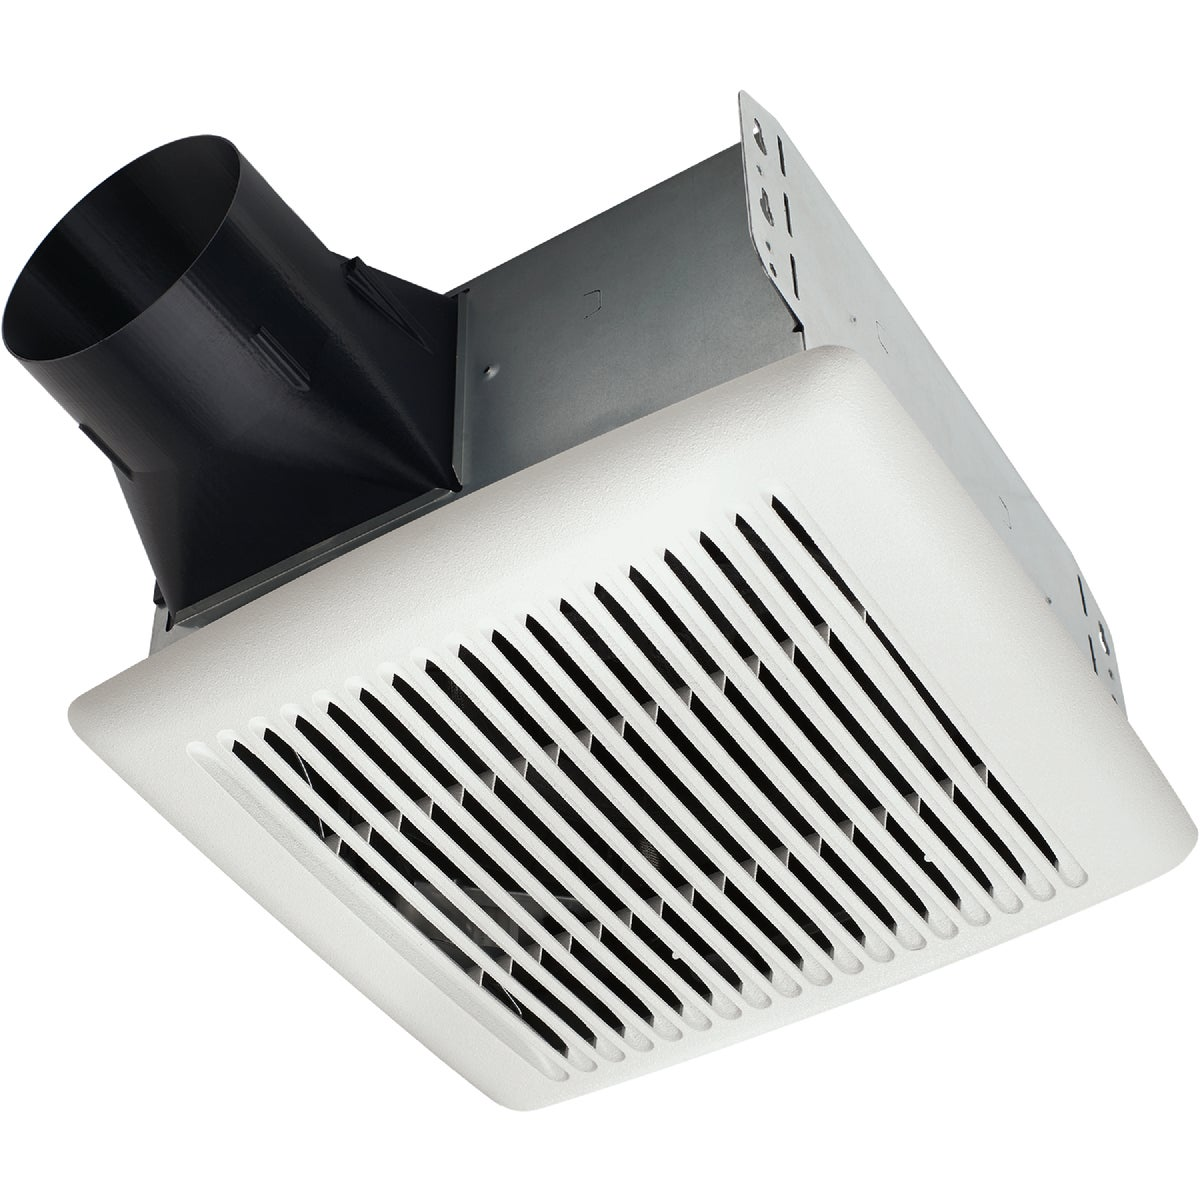 BATH EXHAUST FAN - QTR110 by Broan Nutone